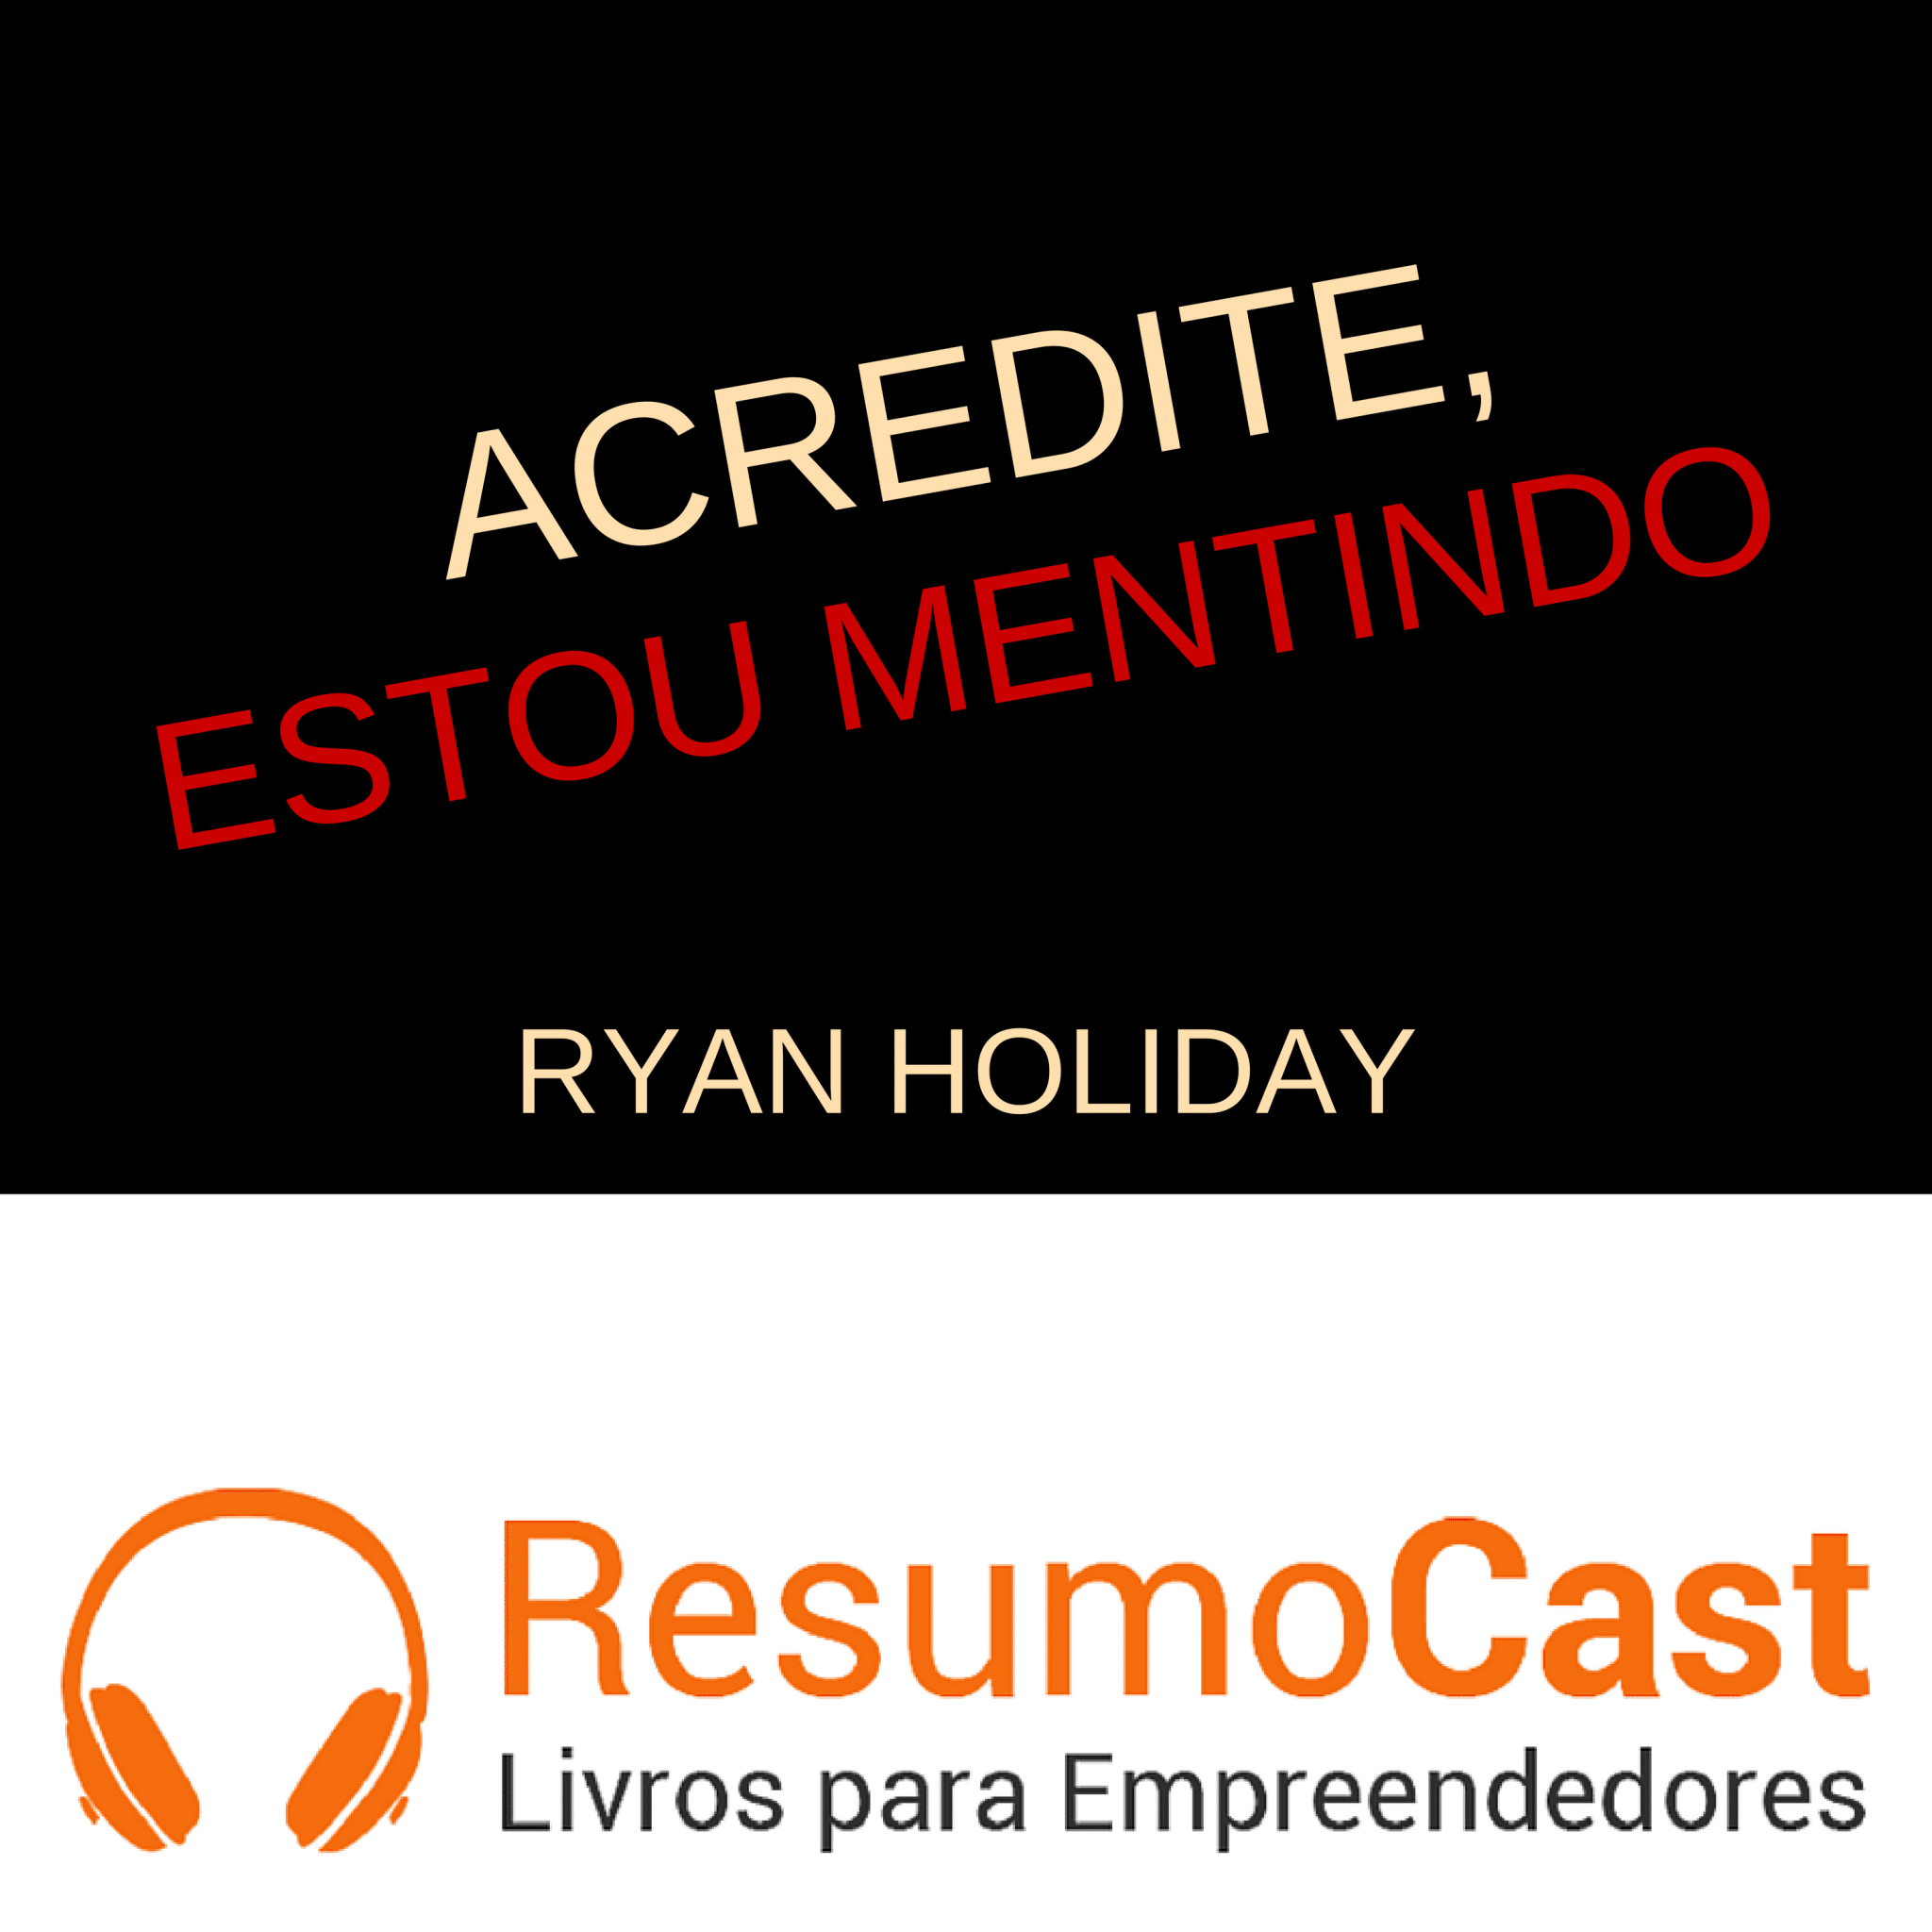 Acredite, Estou Mentindo – Ryan Holiday | T1#064